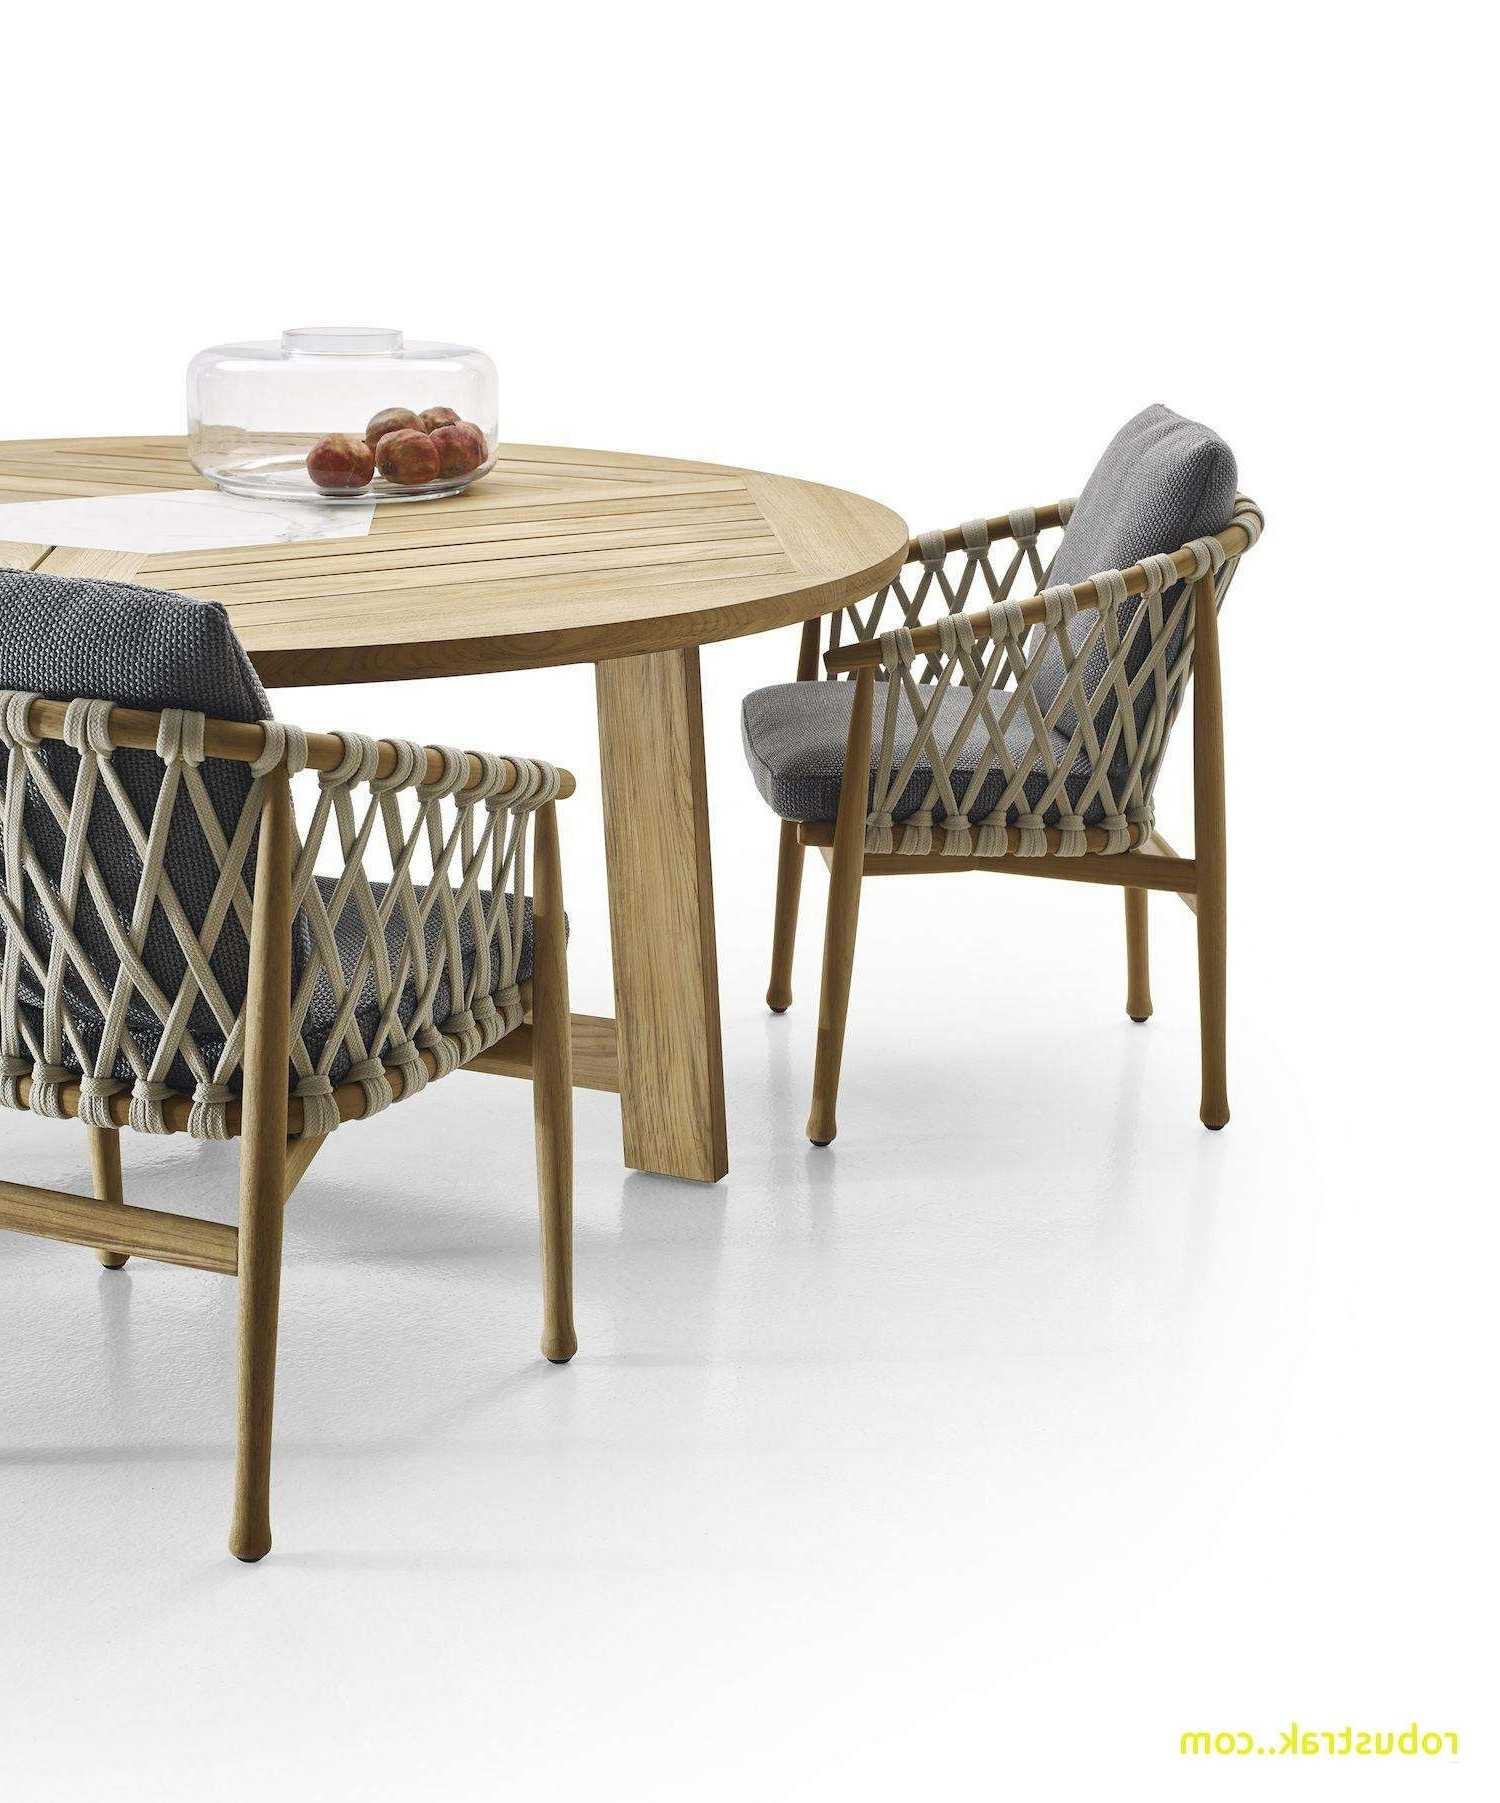 Caira Extension Pedestal Dining Tables Throughout Fashionable The 21 New Pedestals For Dining Tables – Welovedandelion (View 14 of 25)